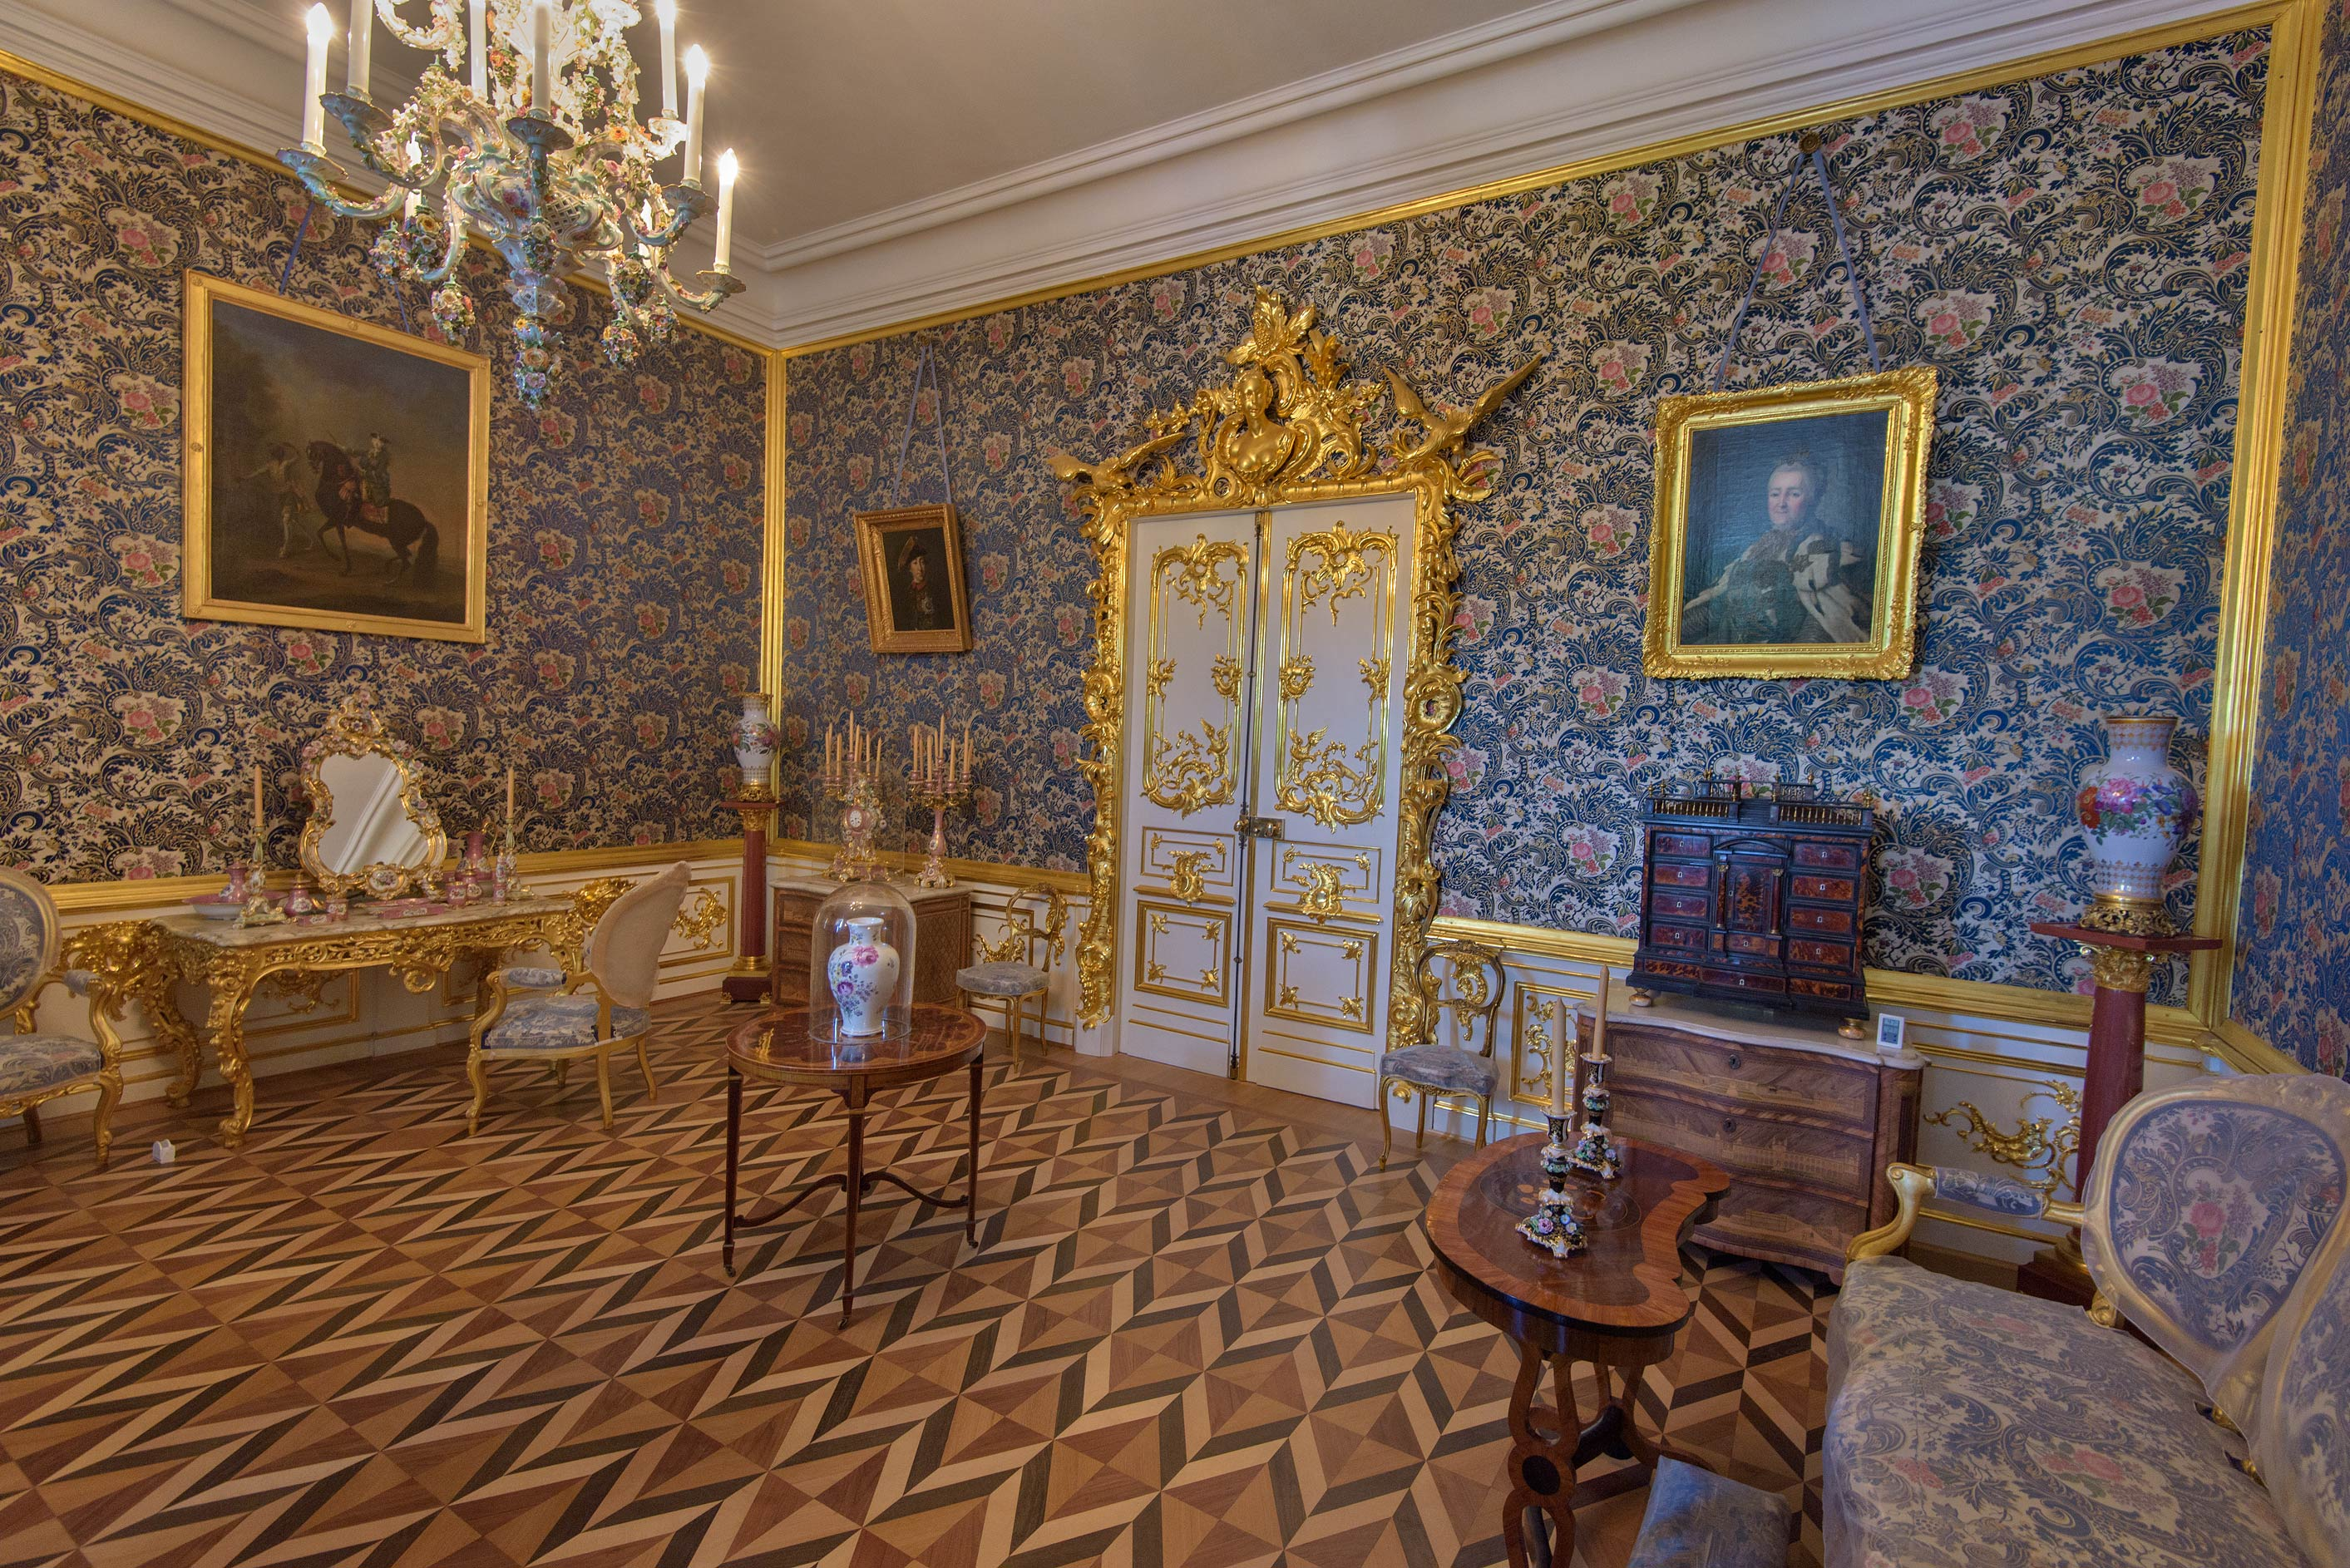 A decorated room in Grand Palace. Peterhof, a suburb of St.Petersburg, Russia